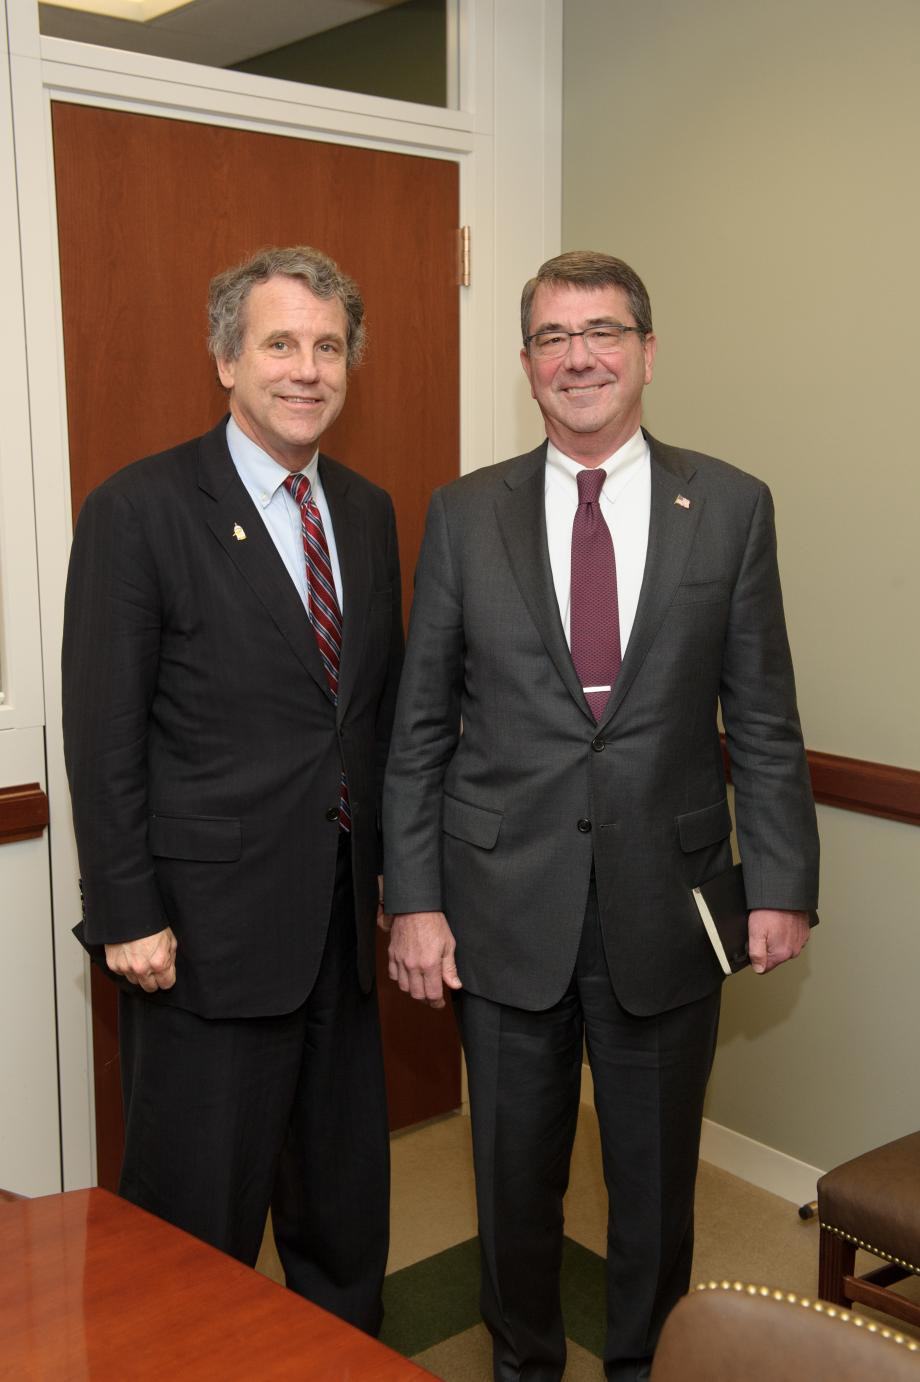 Meeting with Nominee to be the U.S. Secretary of Defense, Dr. Ashton Carter